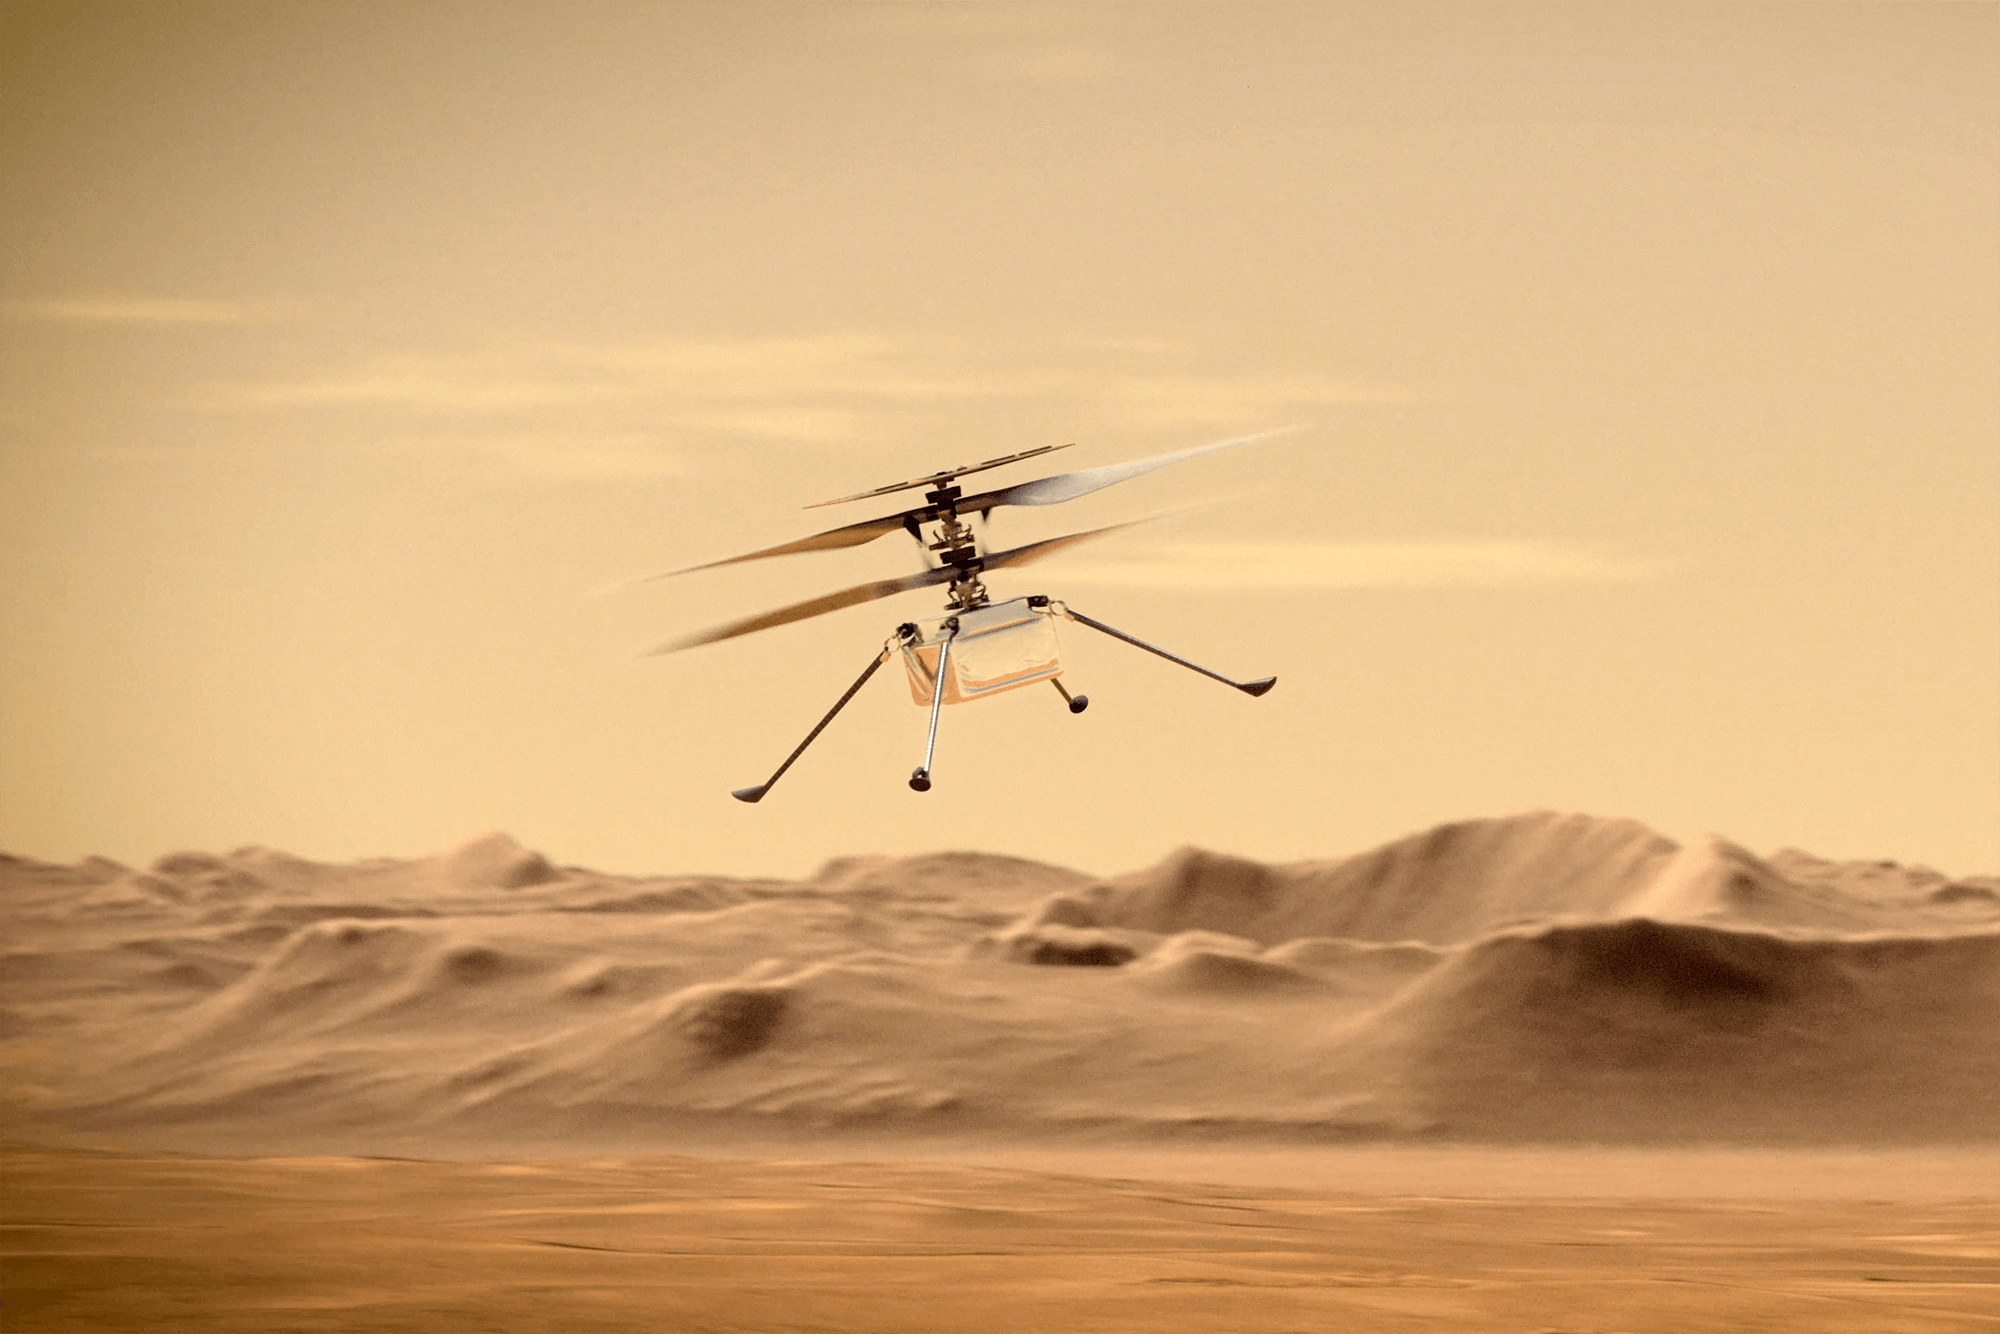 NASA's Mars helicopter aims for two records on the next flight